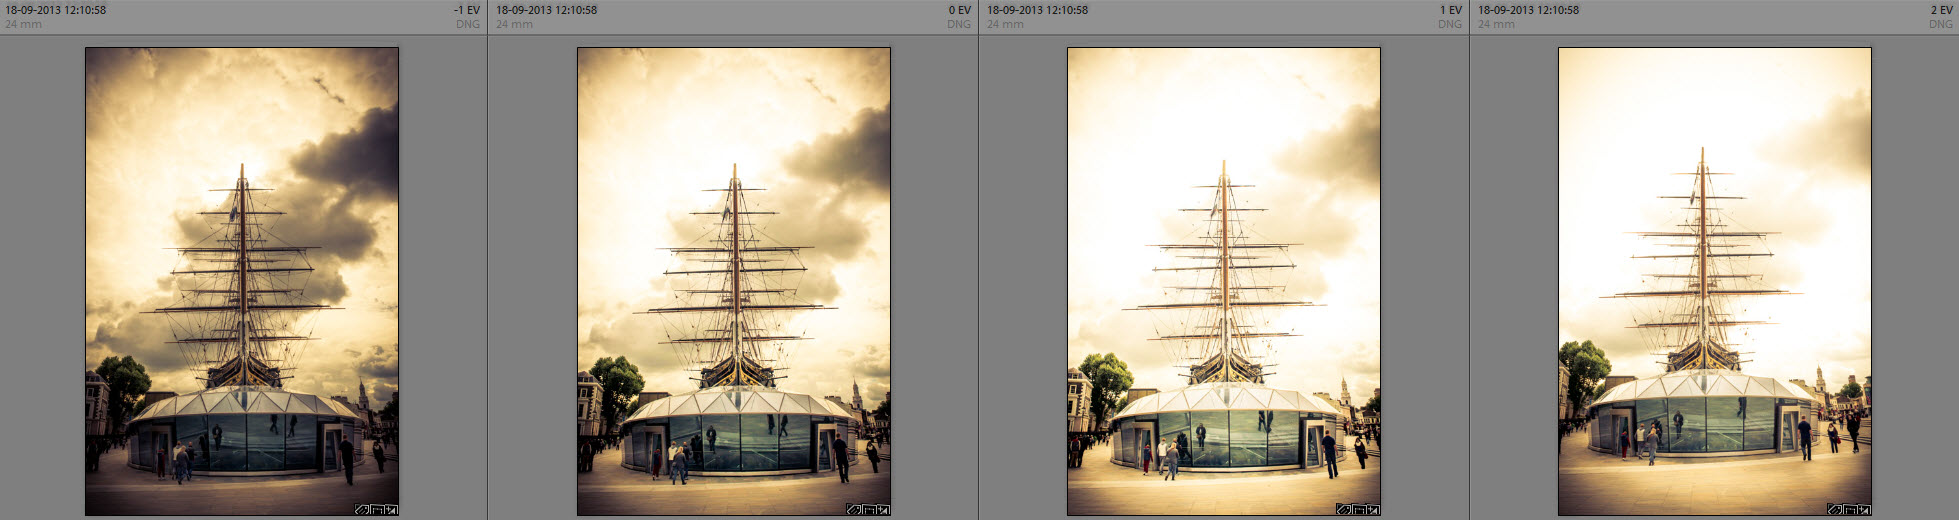 Zenith Cutty Sark exposures